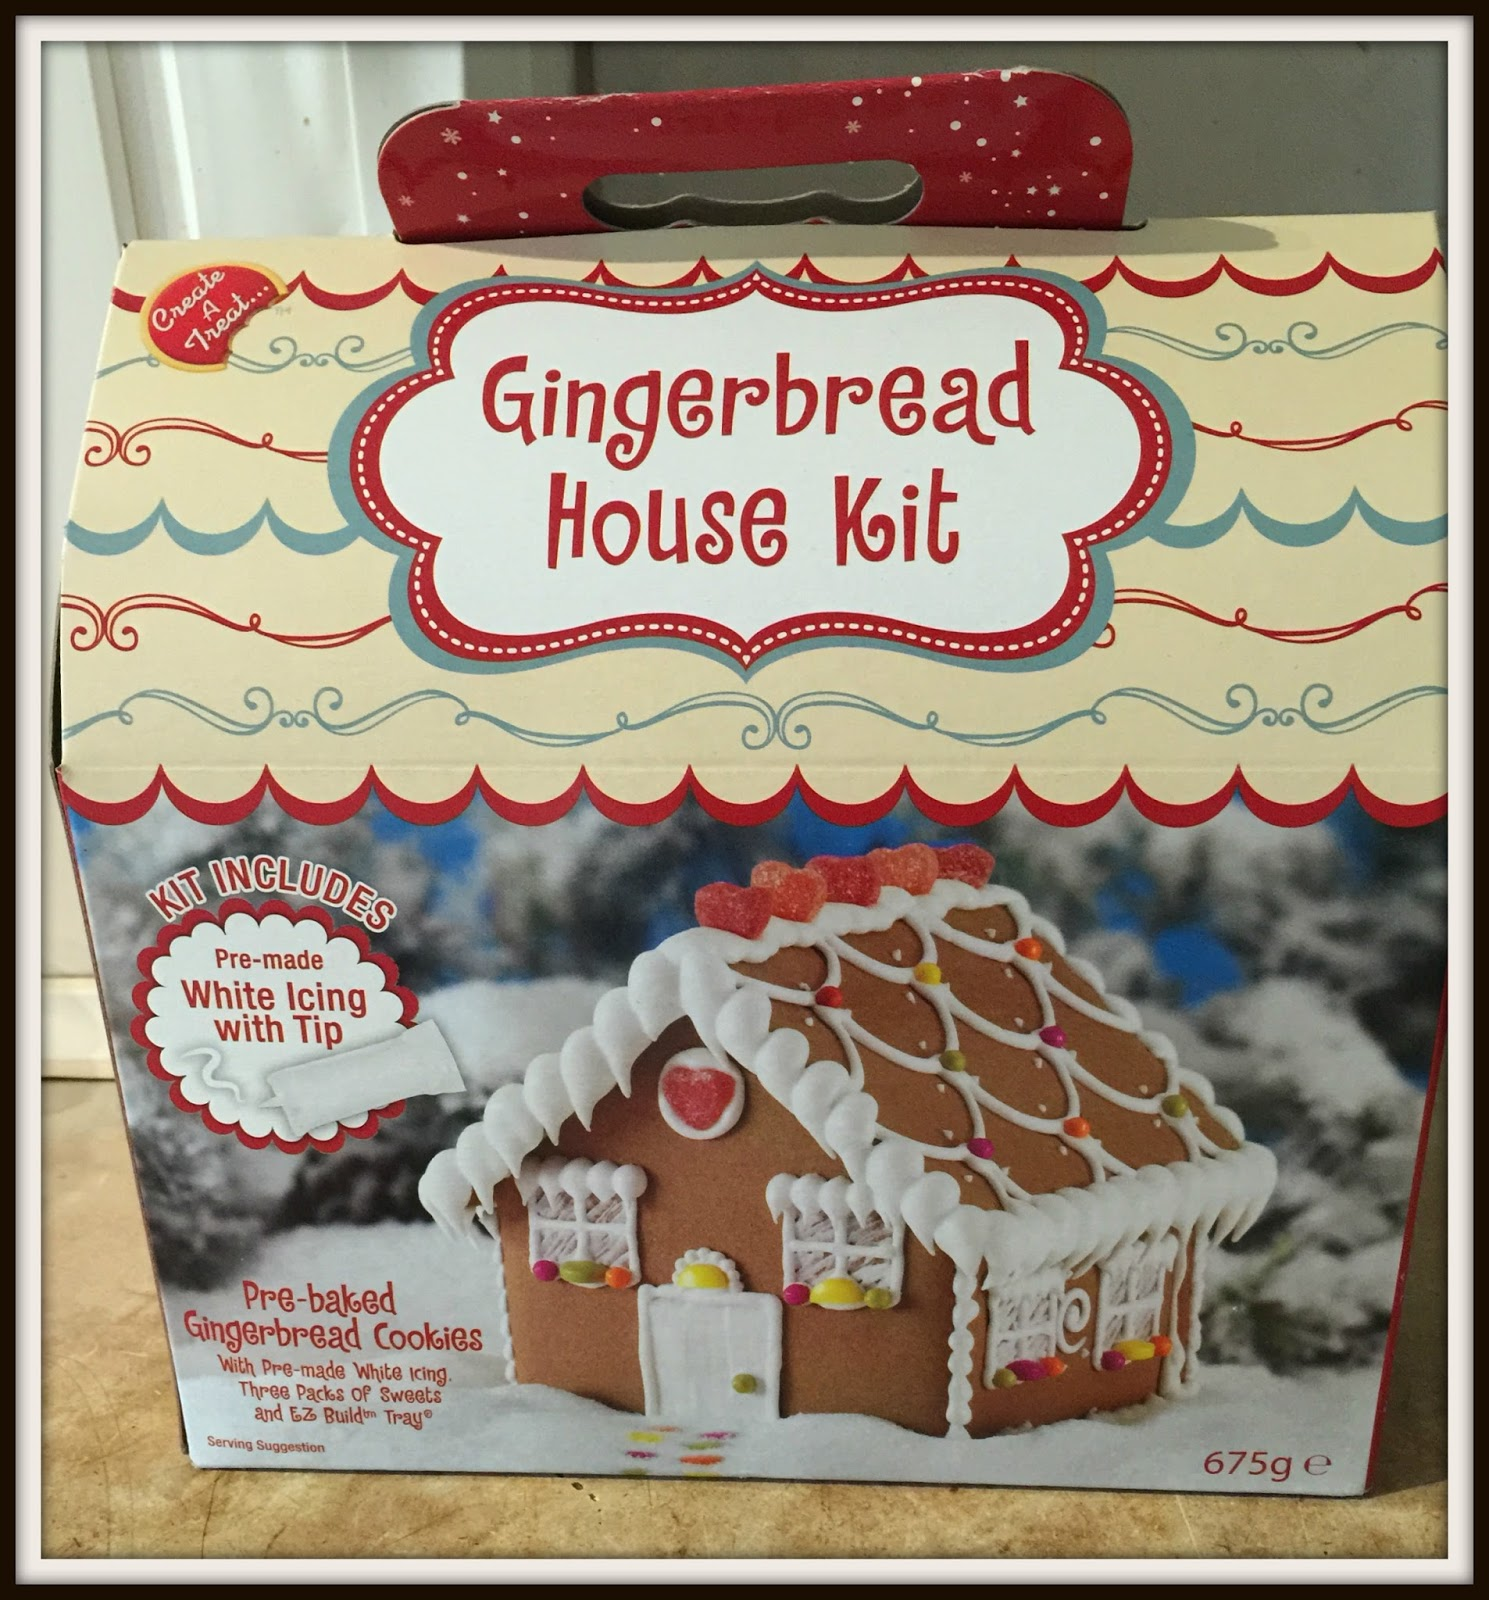 Premade Gingerbread Houses Create A Treat Gingerbread House Kit From Asda Review Glitz And